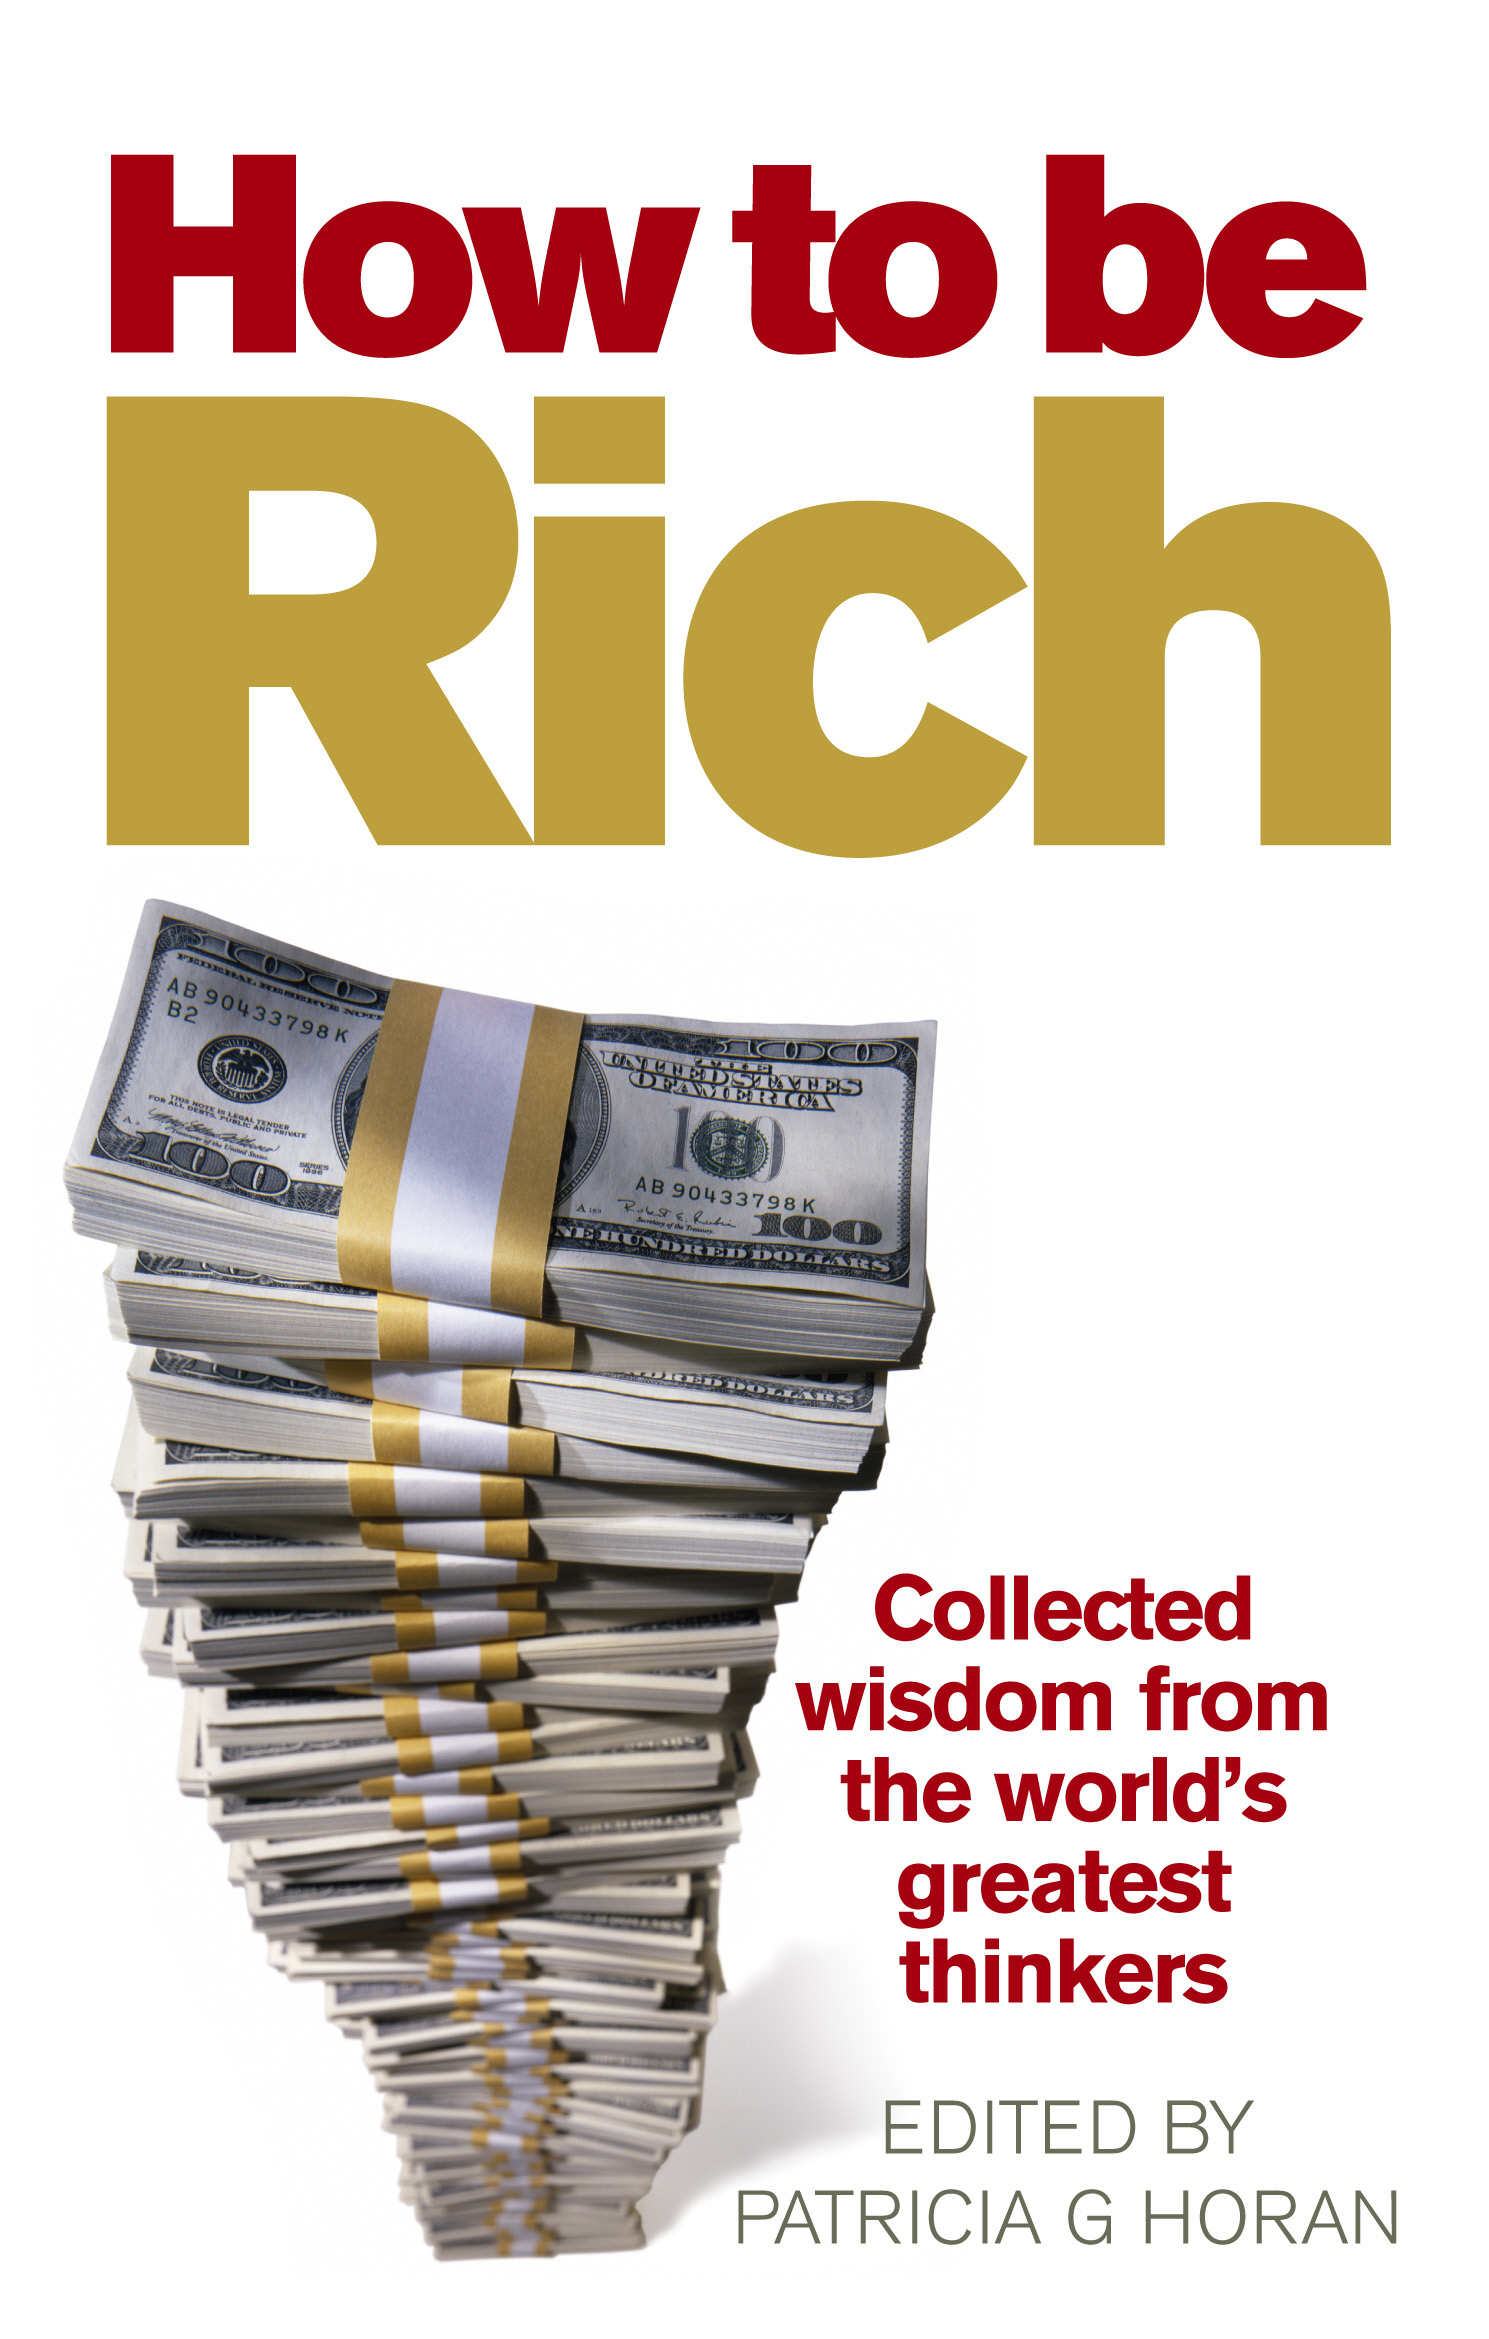 How to be Rich Collected wisdom from the world's greatest thinkers